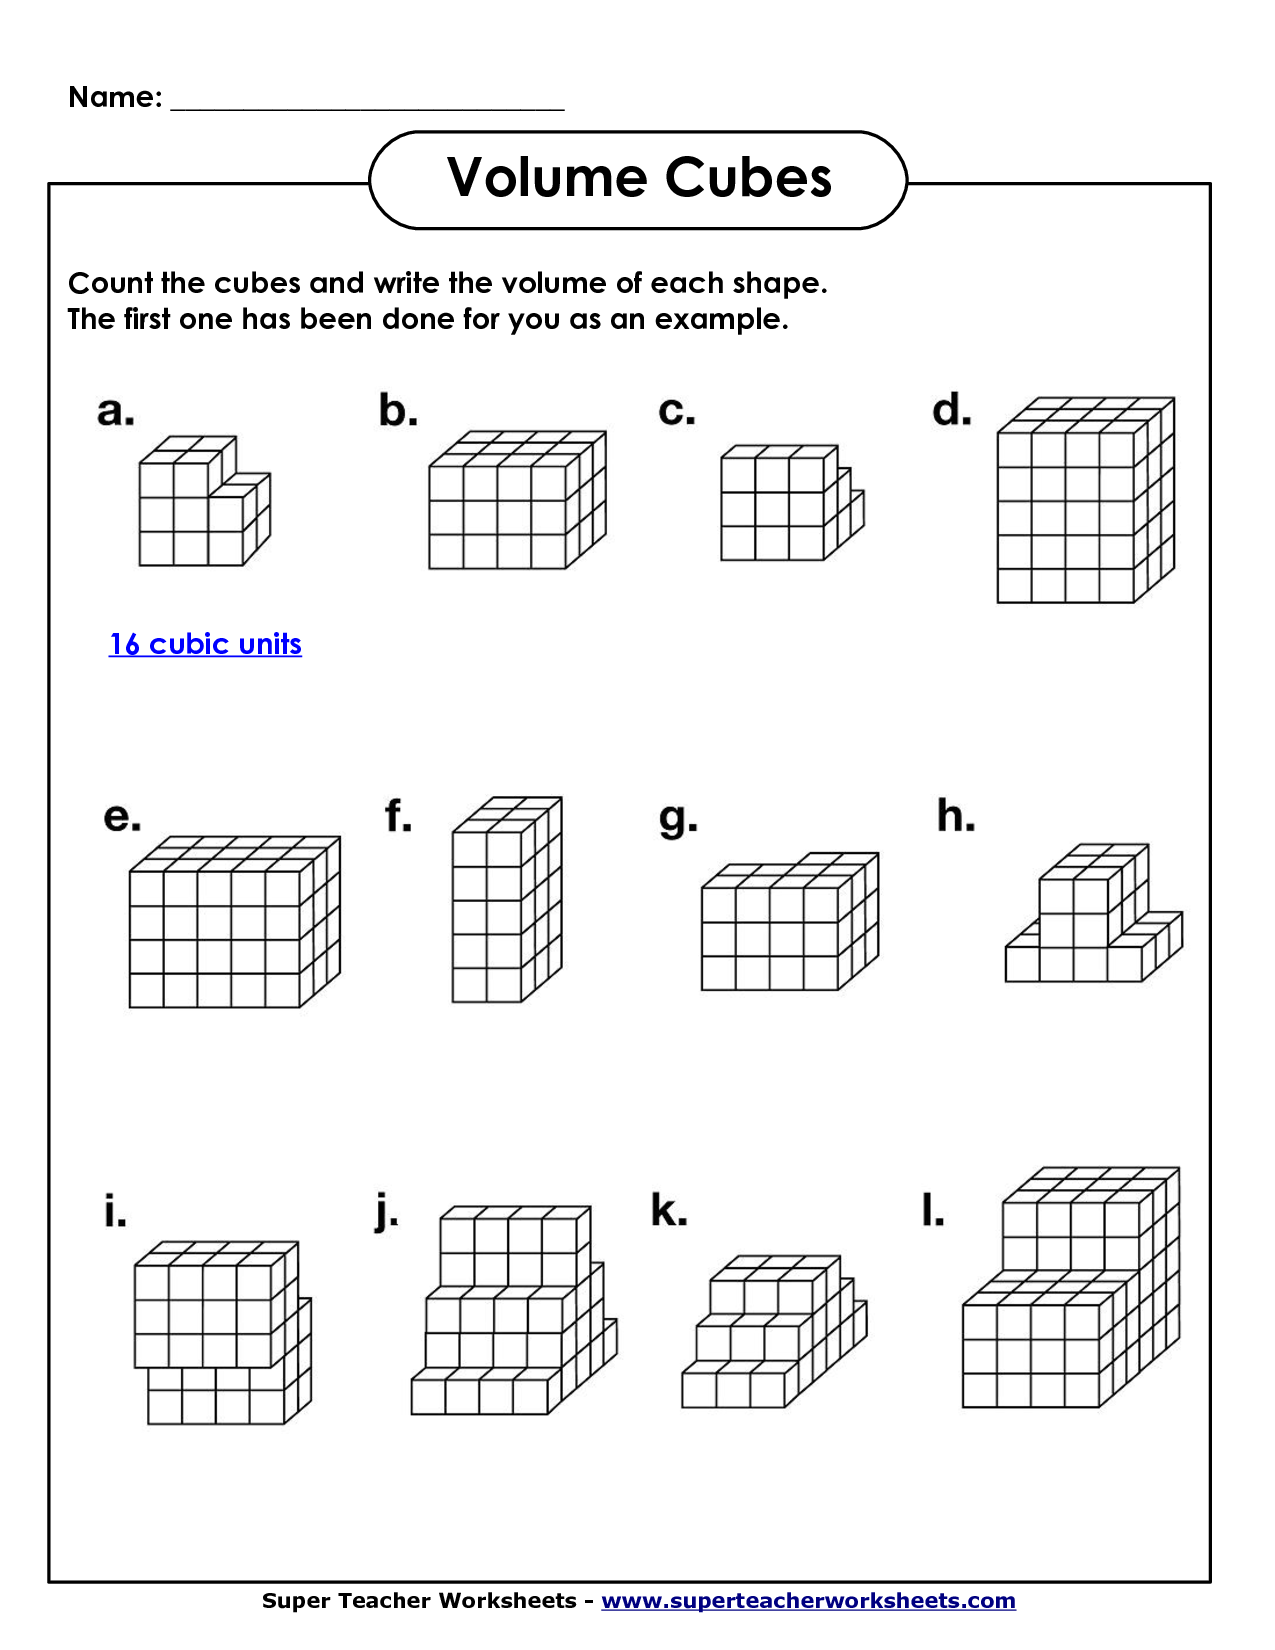 Worksheets Common Core 5th Grade Math Worksheets teaching to inspire in 5th volume common core resource geometry with cubic units pdf math olympiadmath worksheetsmath activities5th grade